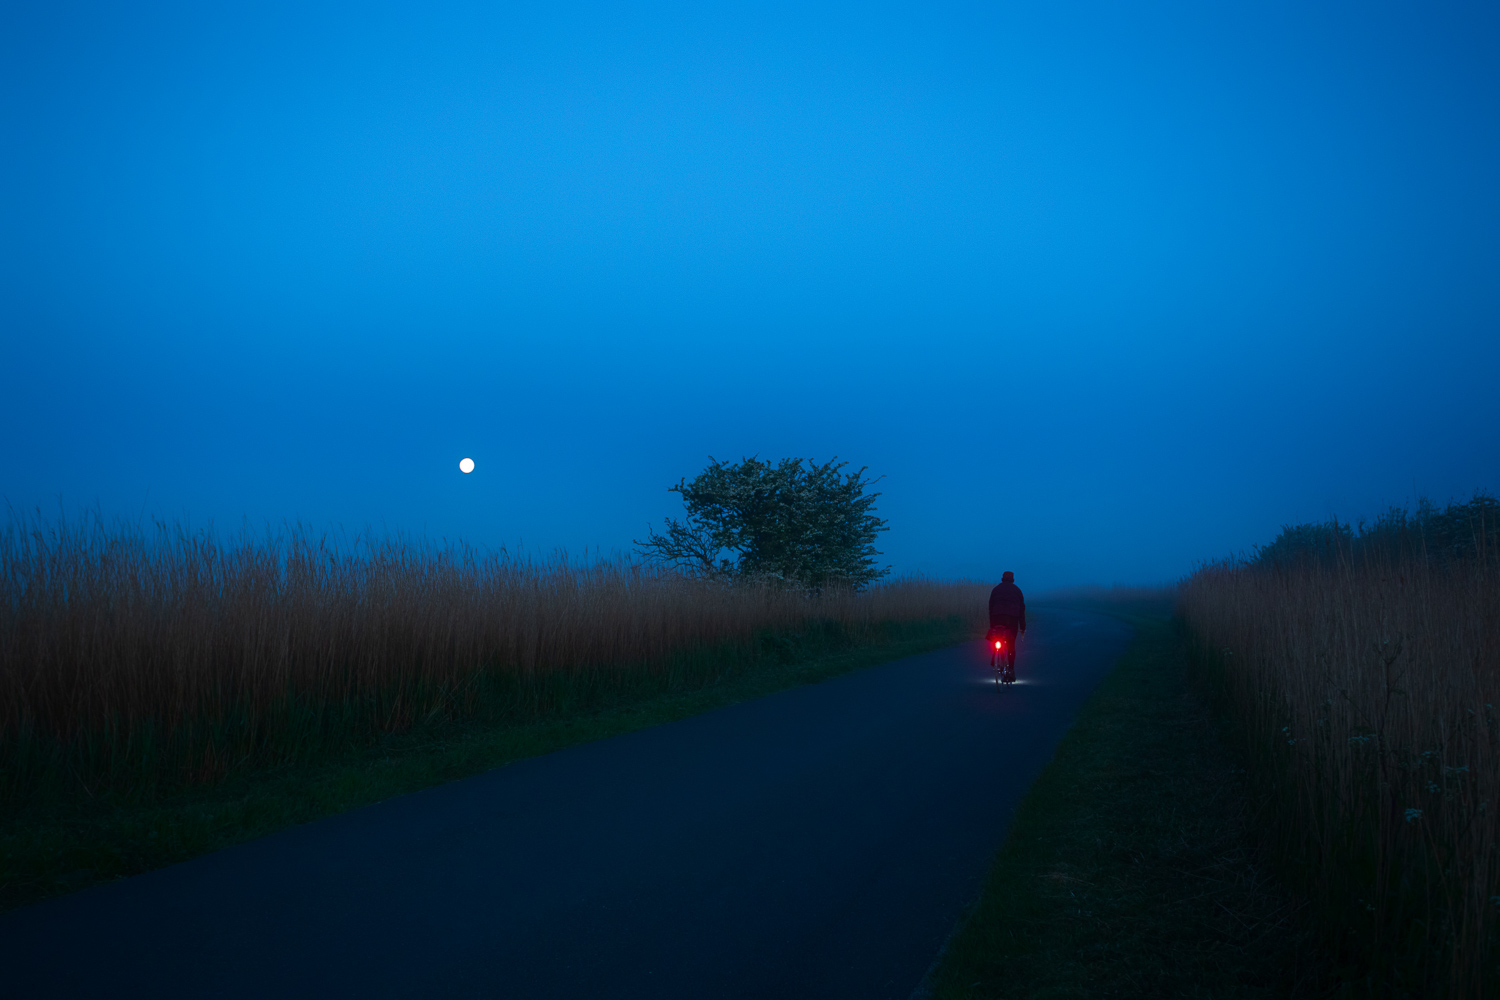 Cyclist pedalling down empty country lane by moonlight